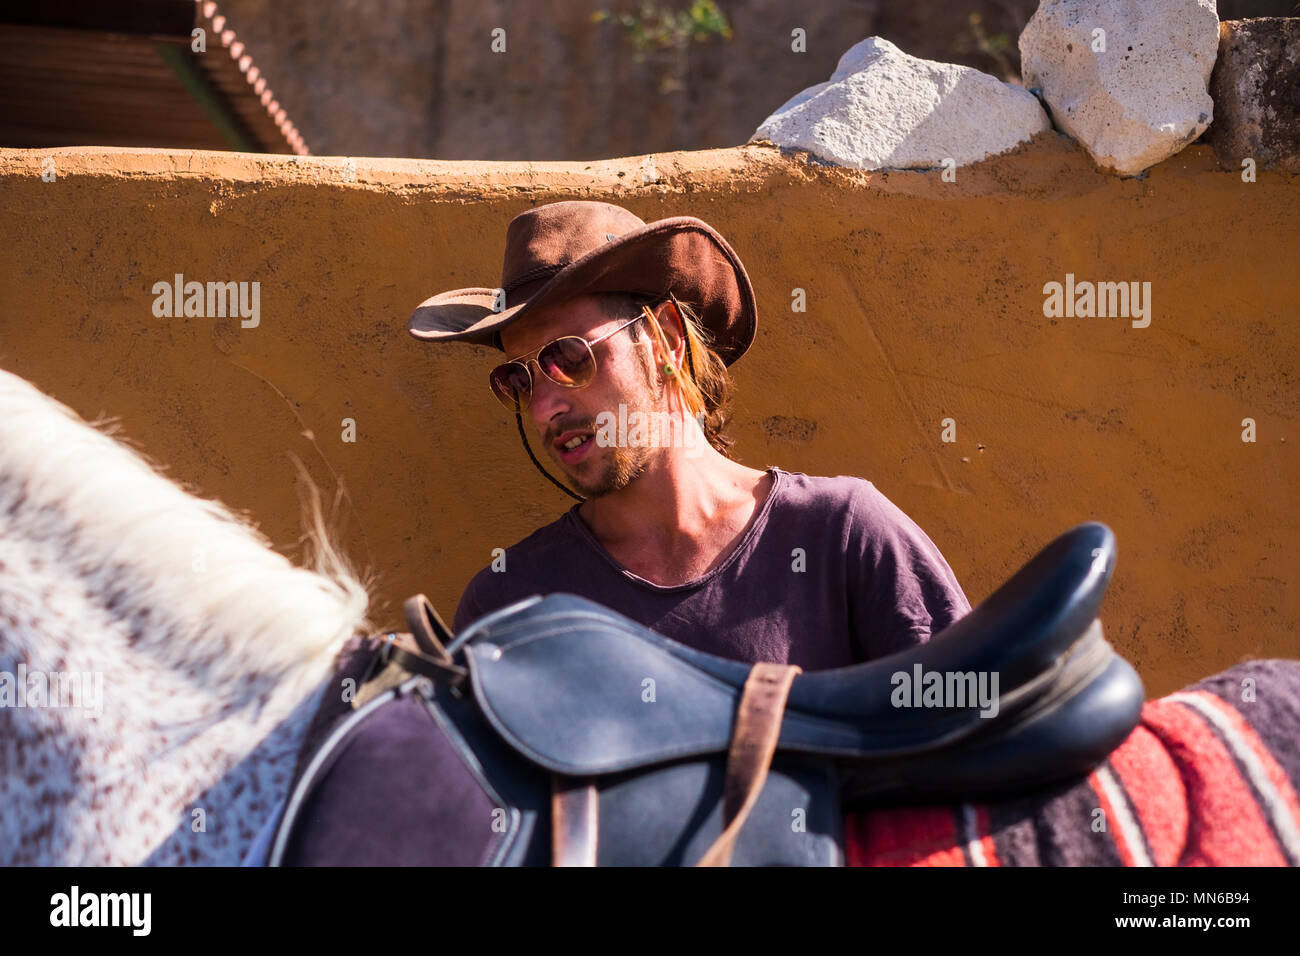 blonde young man prepare a horse to go on trekking excursion with cowboy hat. alternative lifestyle leisure activity under the sun in the summer. coun - Stock Image